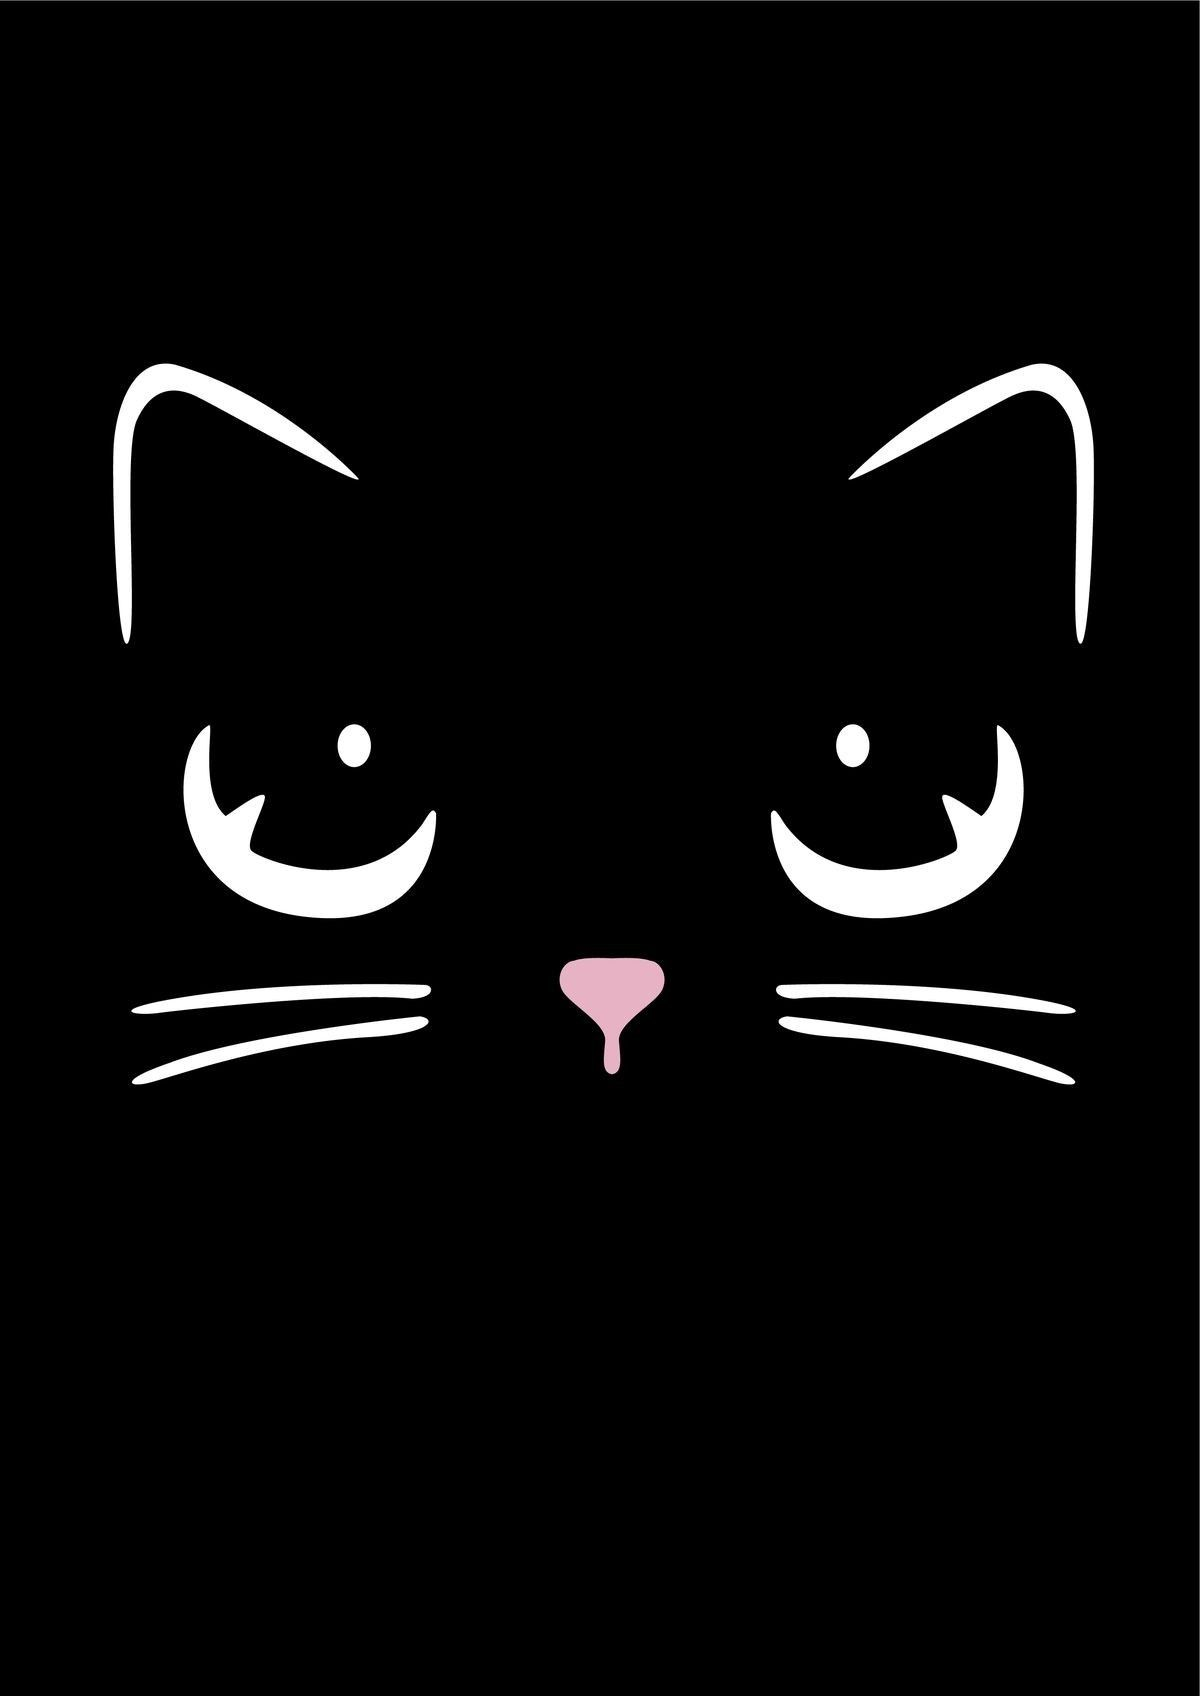 Pin By Esther M On Cats Cute Cartoon Wallpapers Cat Wallpaper Cartoon Wallpaper